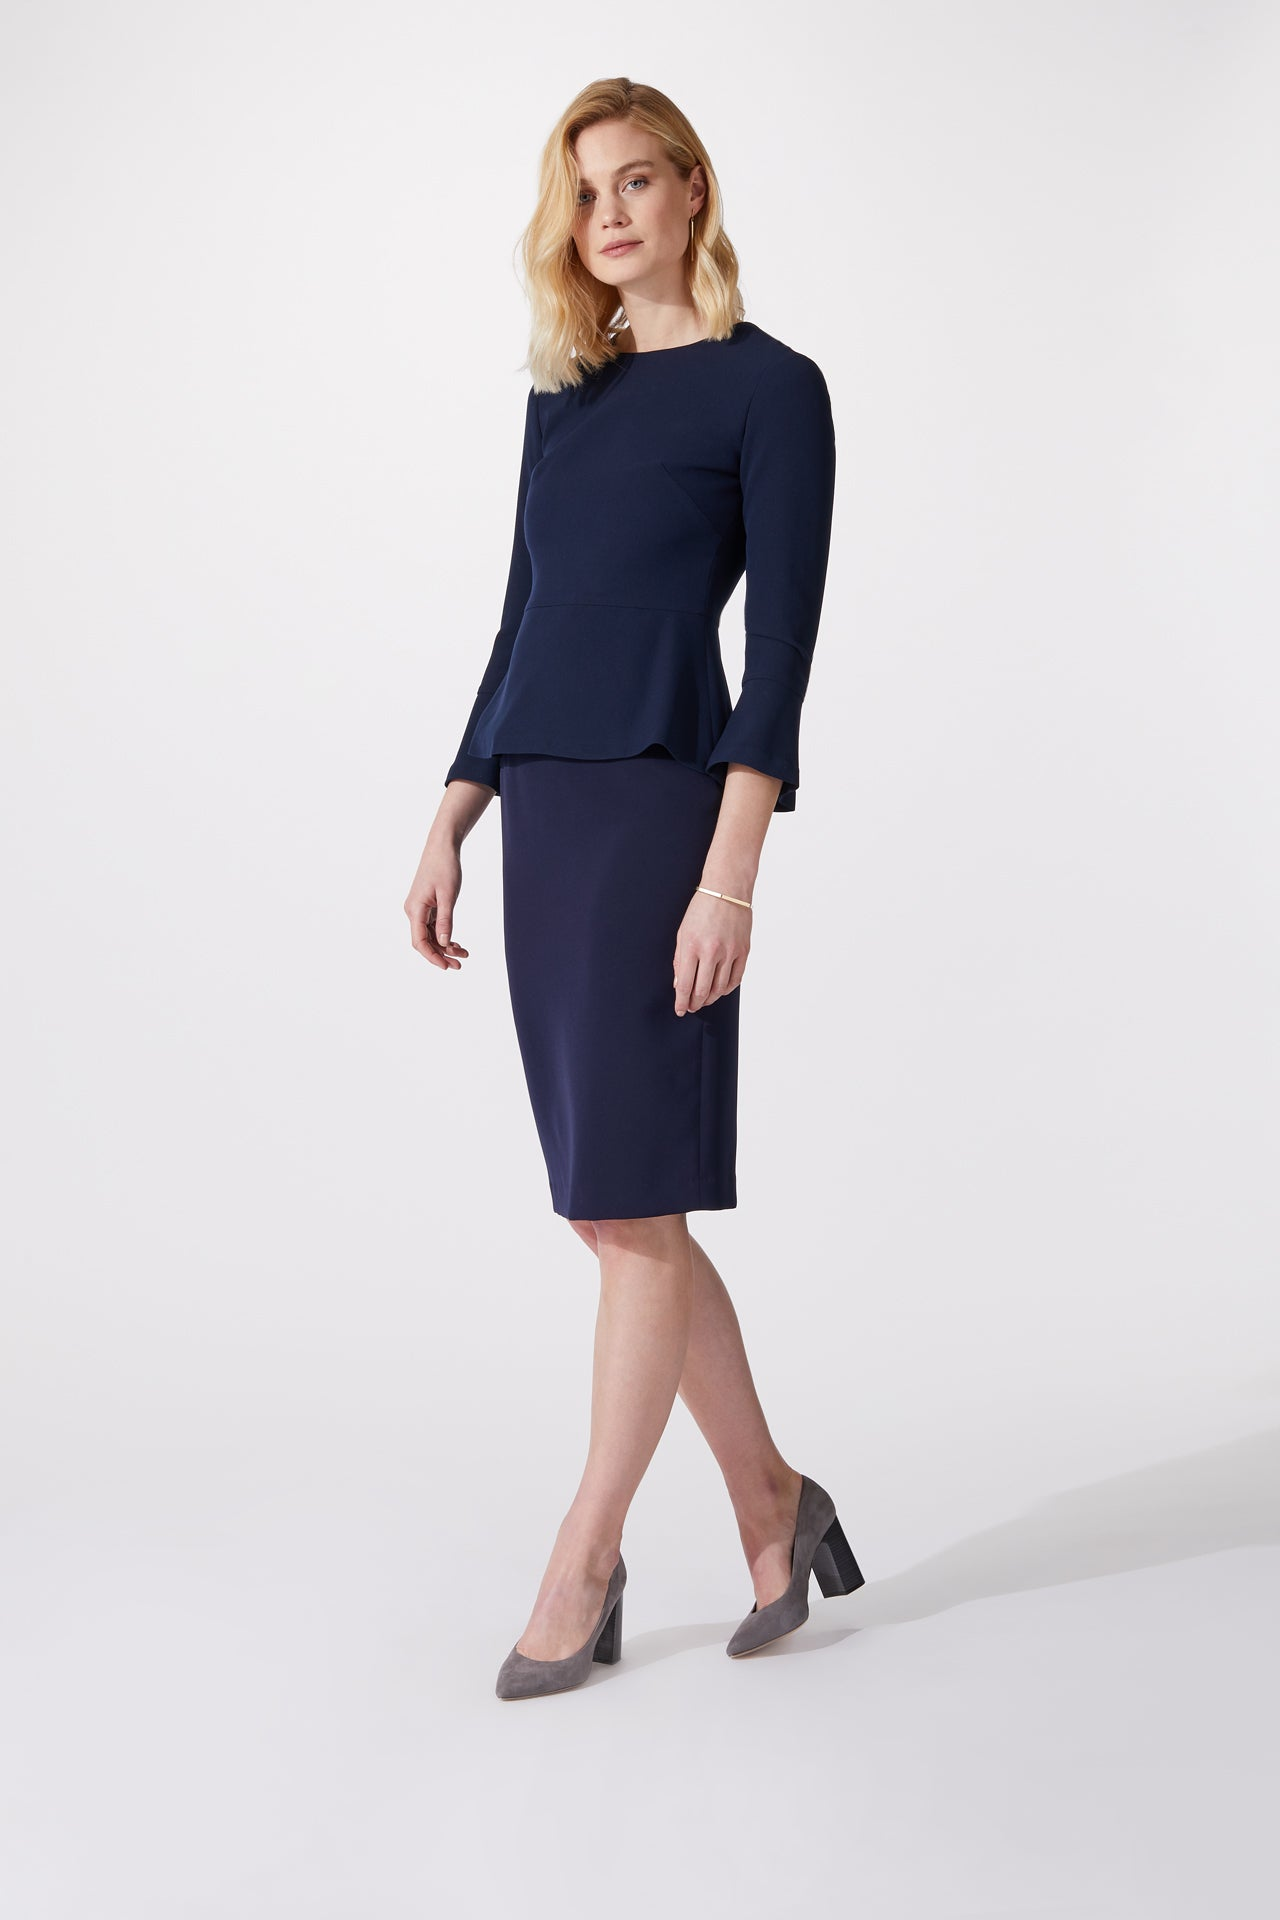 Chartwell Dark Navy Top